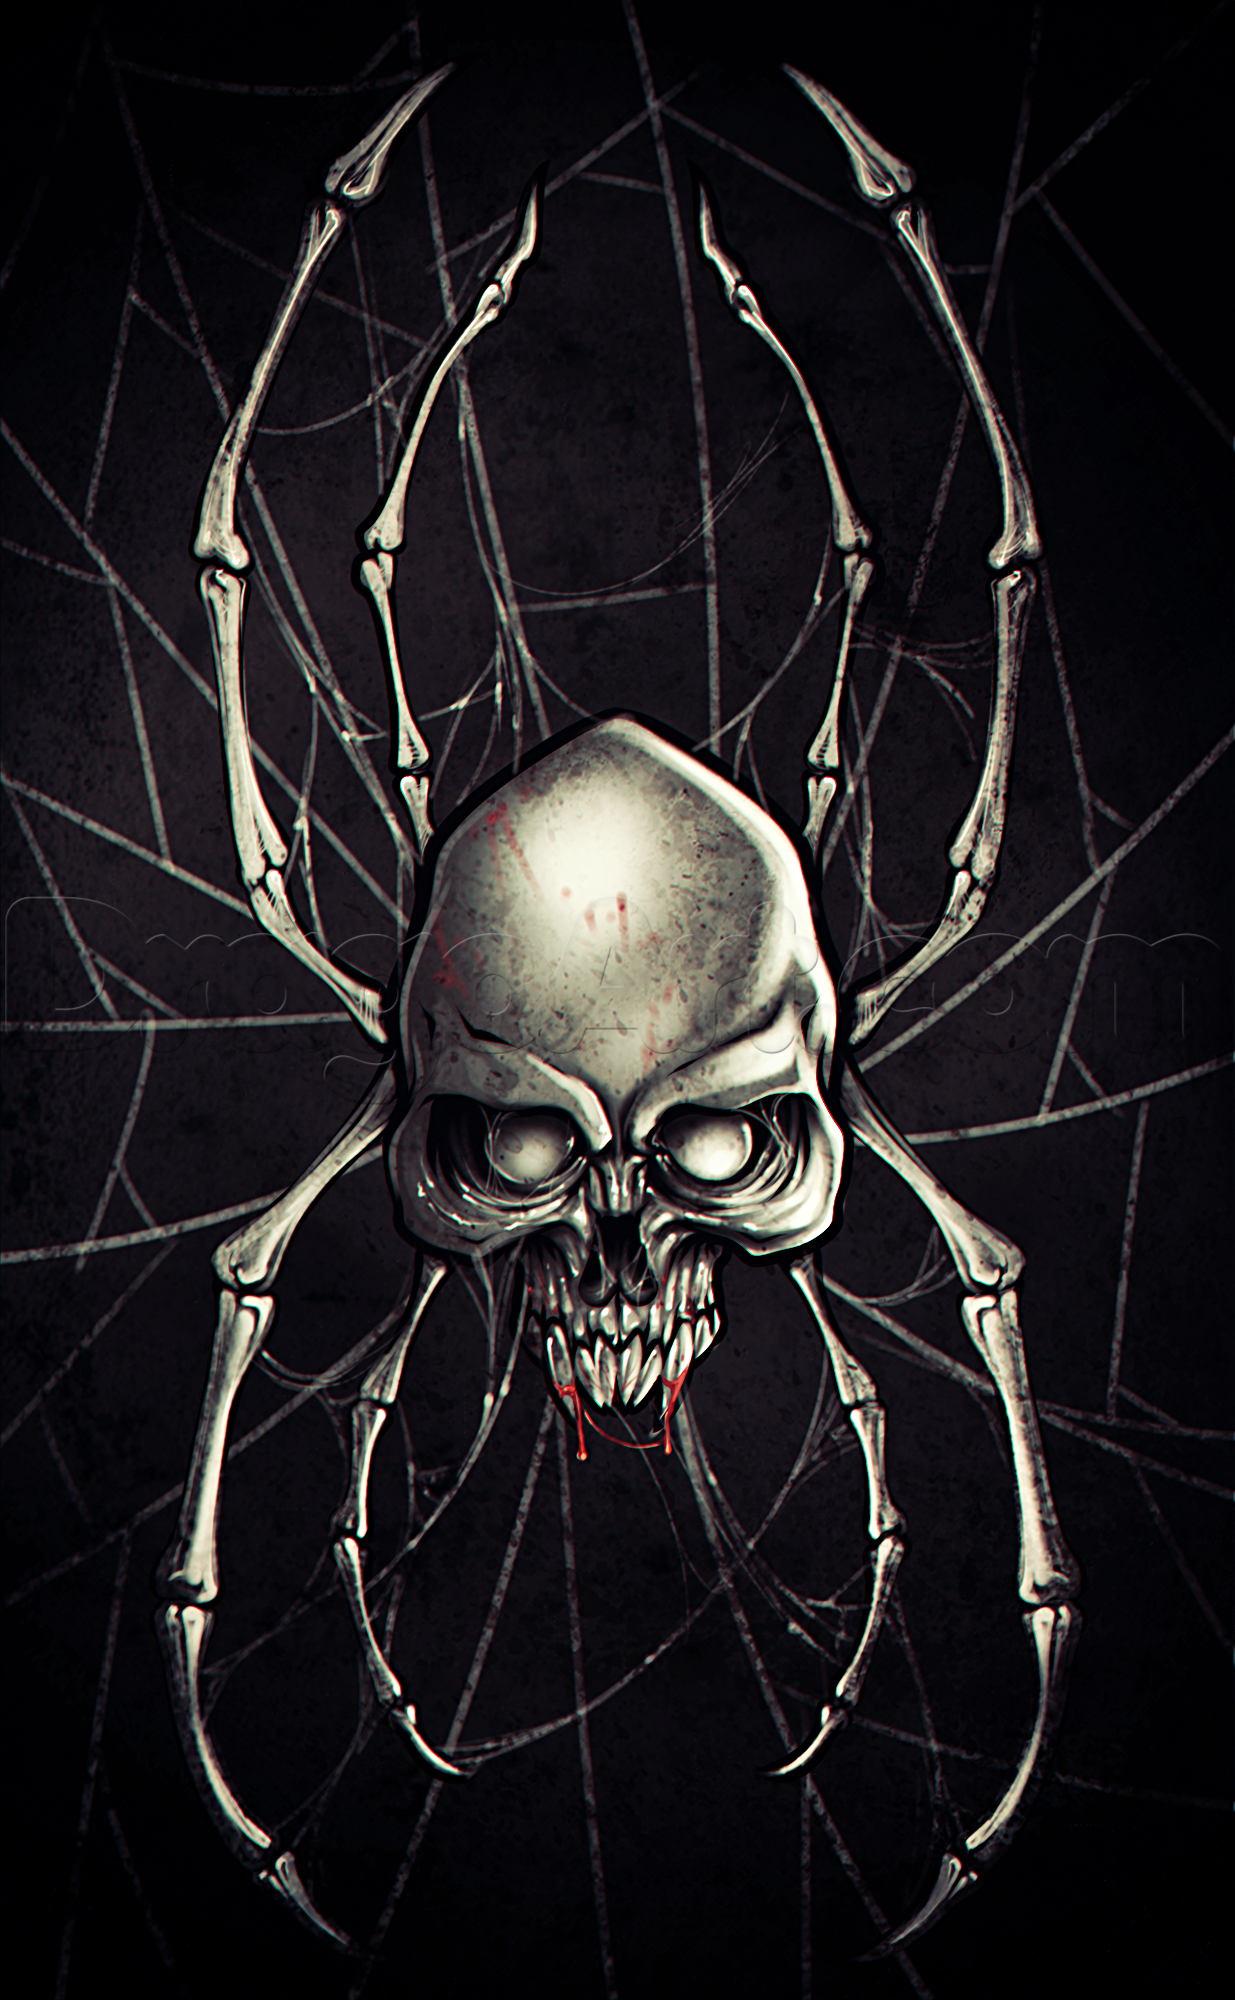 Image - How-to-draw-a-spider-skull-tattoo 1 000000019950 5-1-.png ...